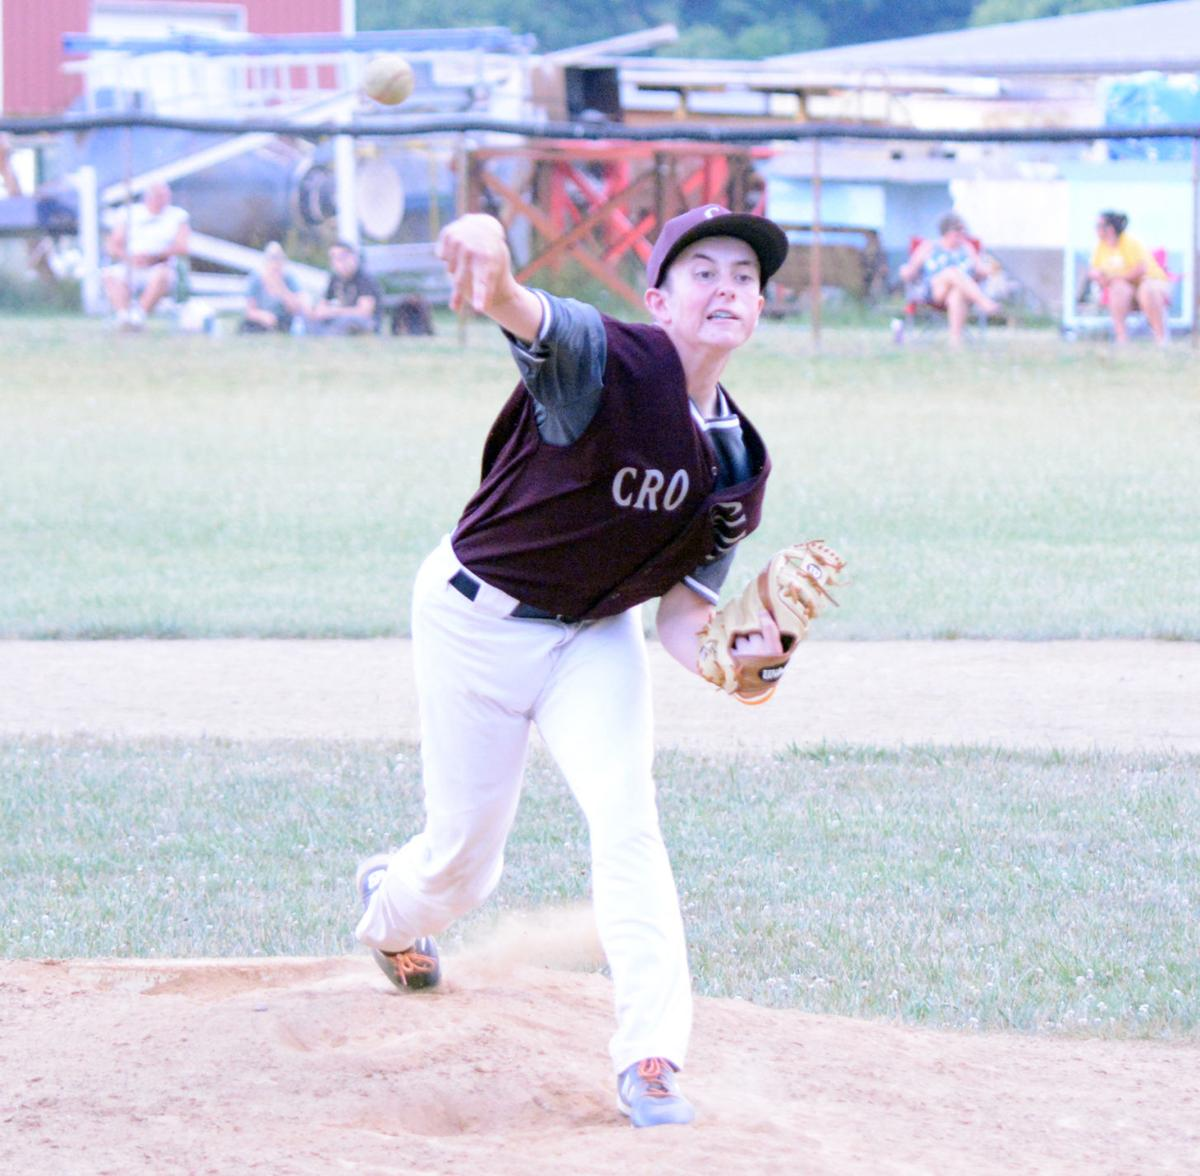 Zach Witherow pitching